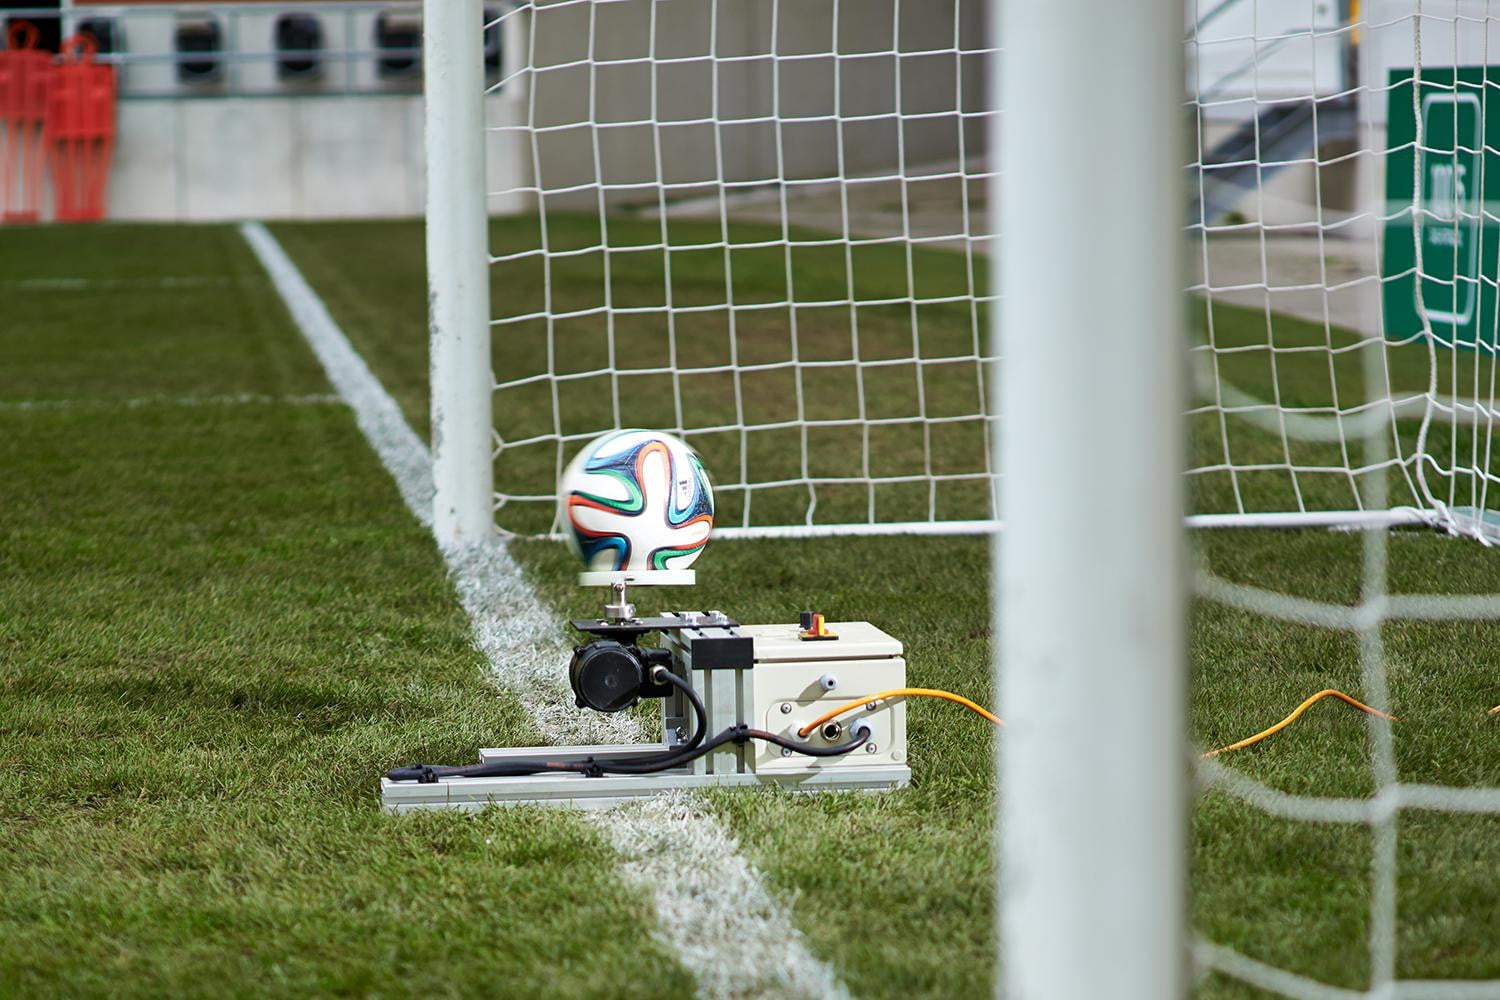 When the ball crosses the goal line, the system sends a signal to a ...